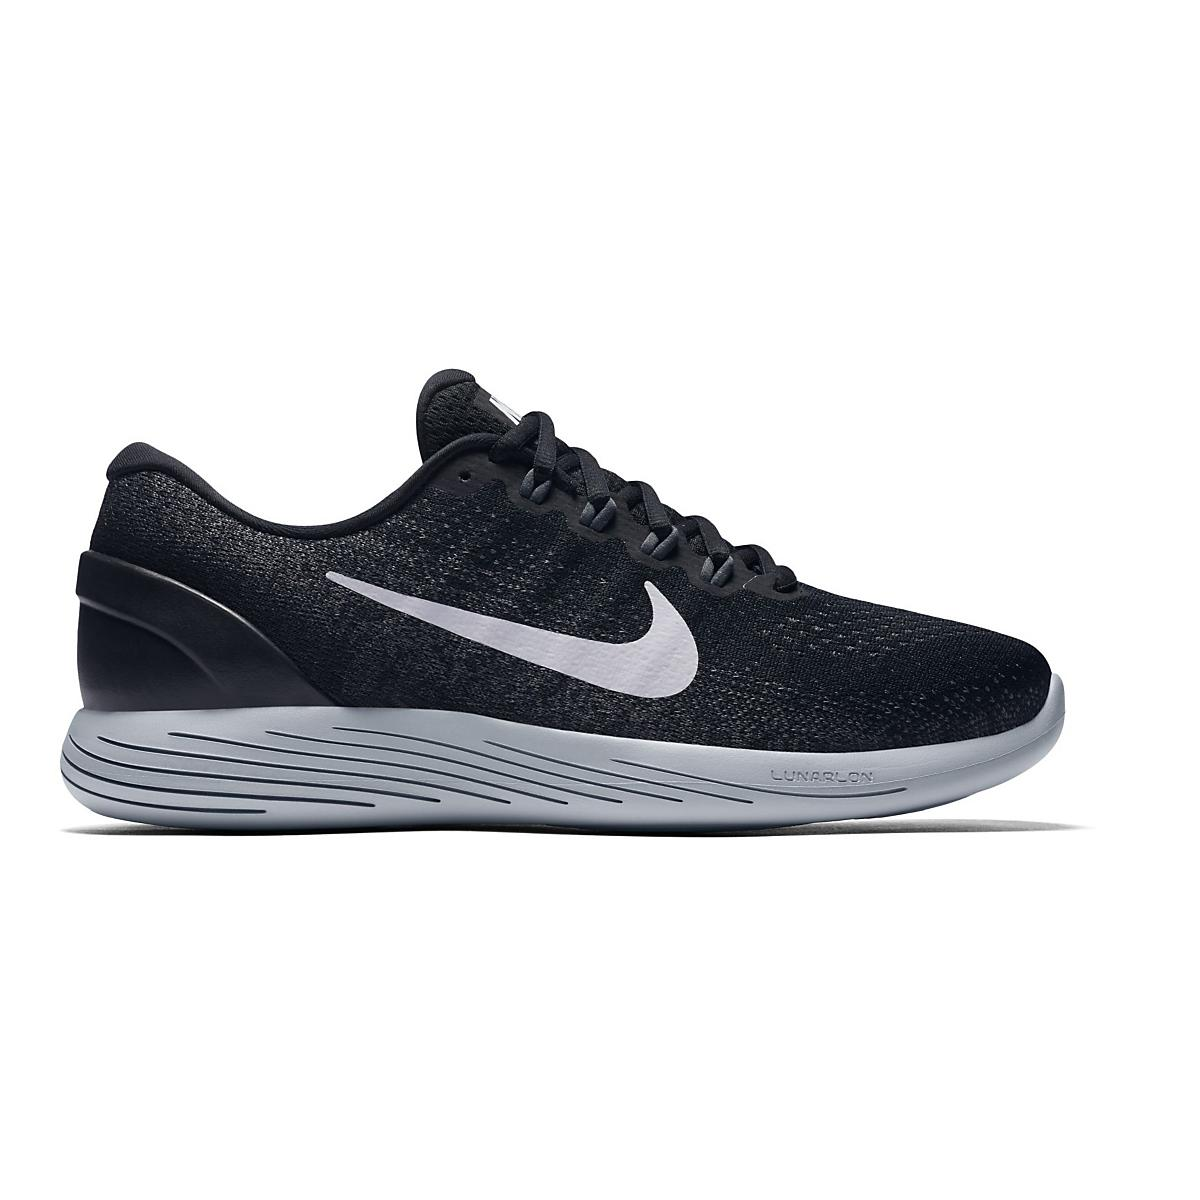 05f779cb2bb Mens Nike LunarGlide 9 Running Shoe at Road Runner Sports